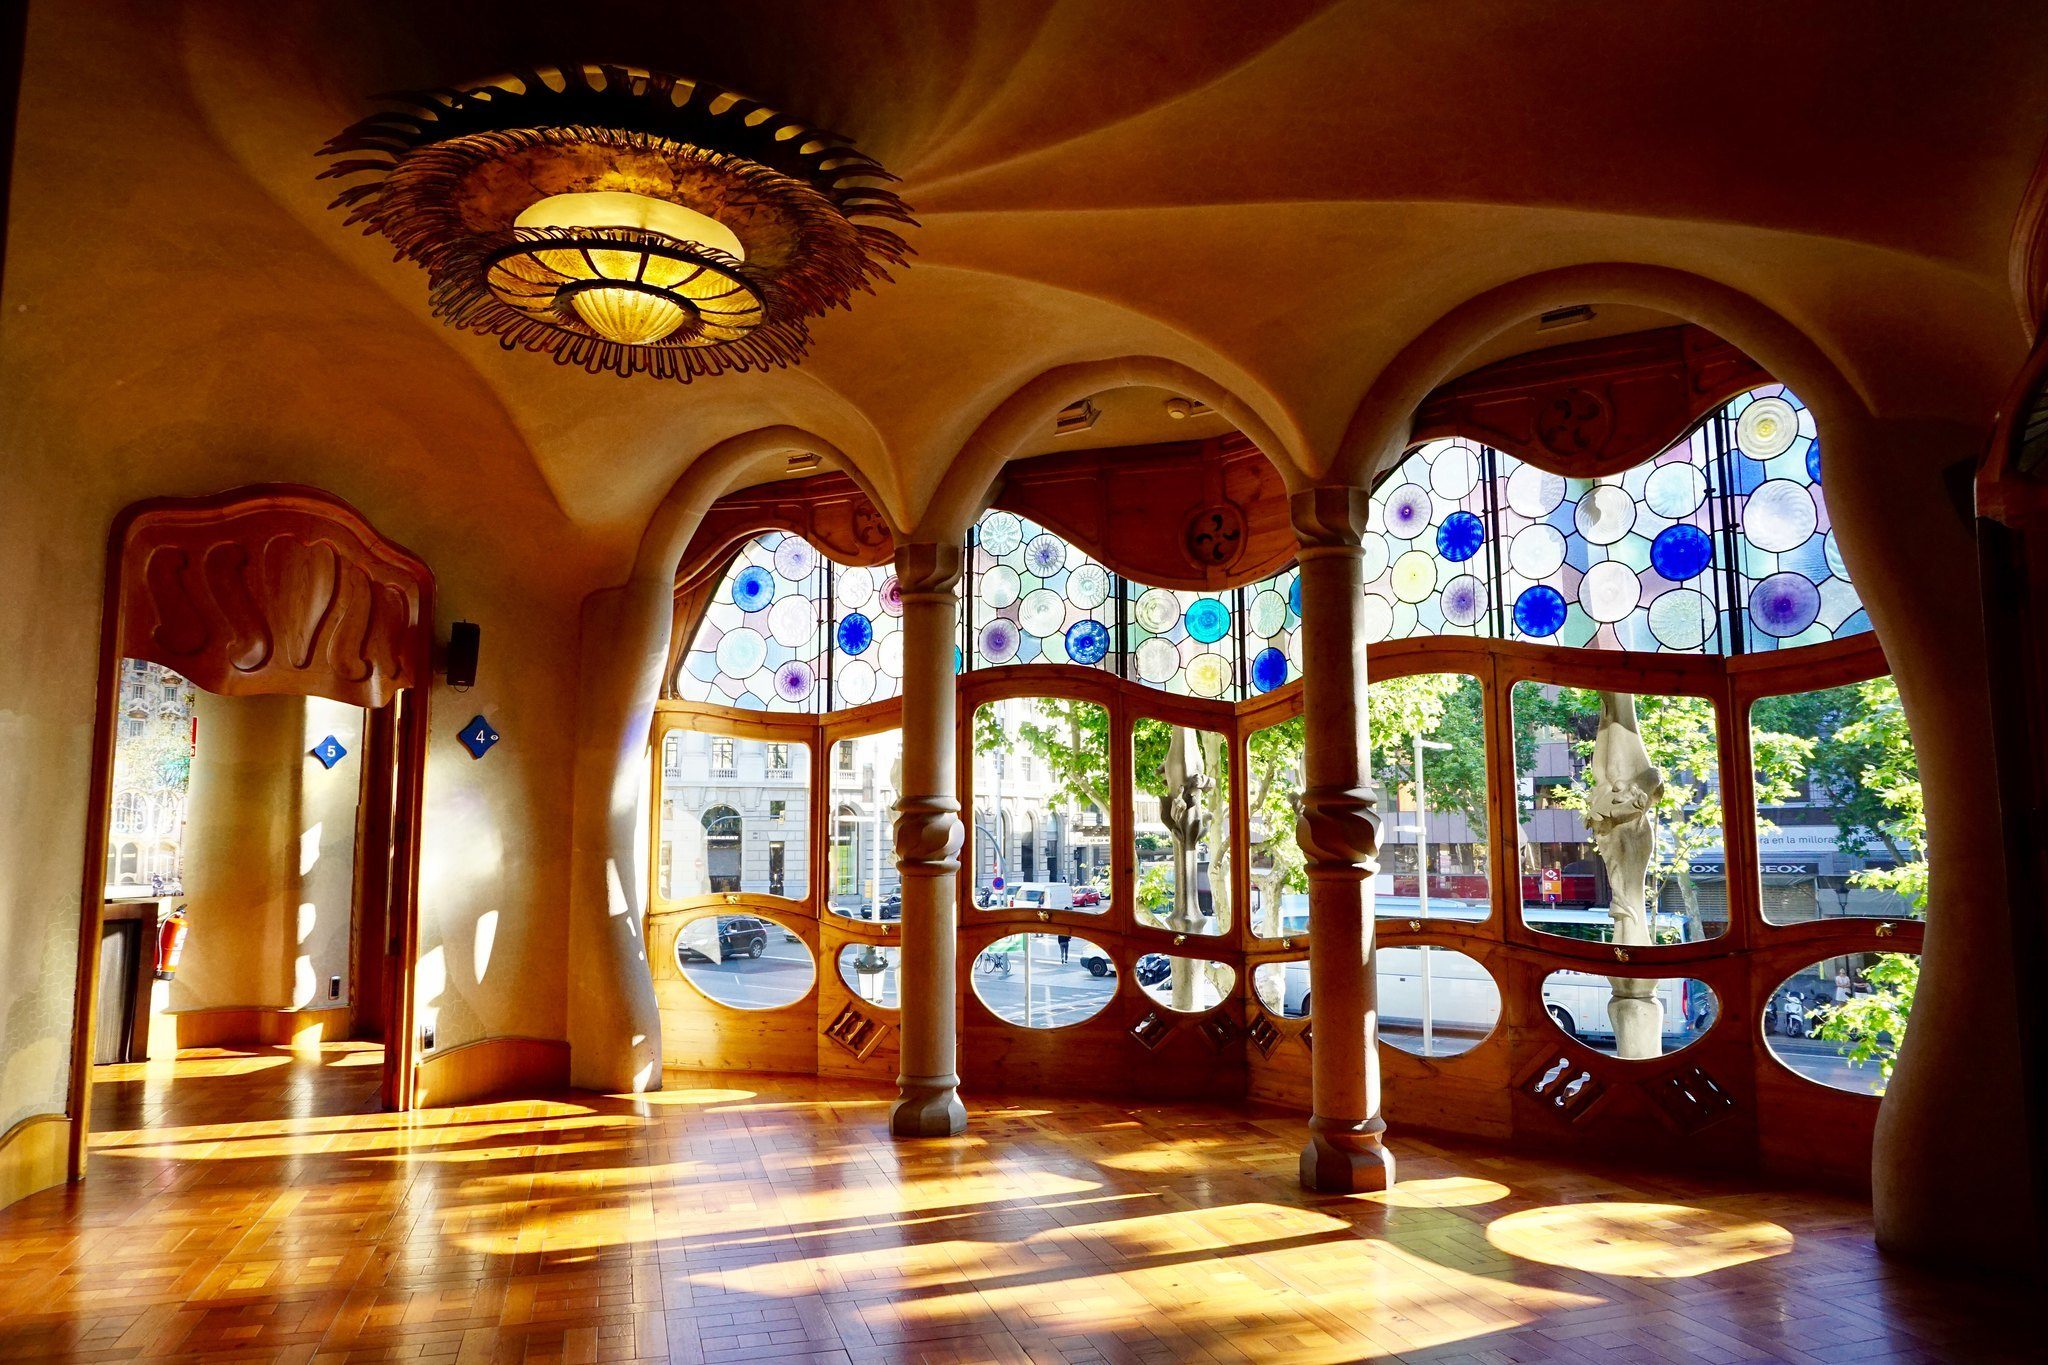 Tips on Visiting Casa Batllo